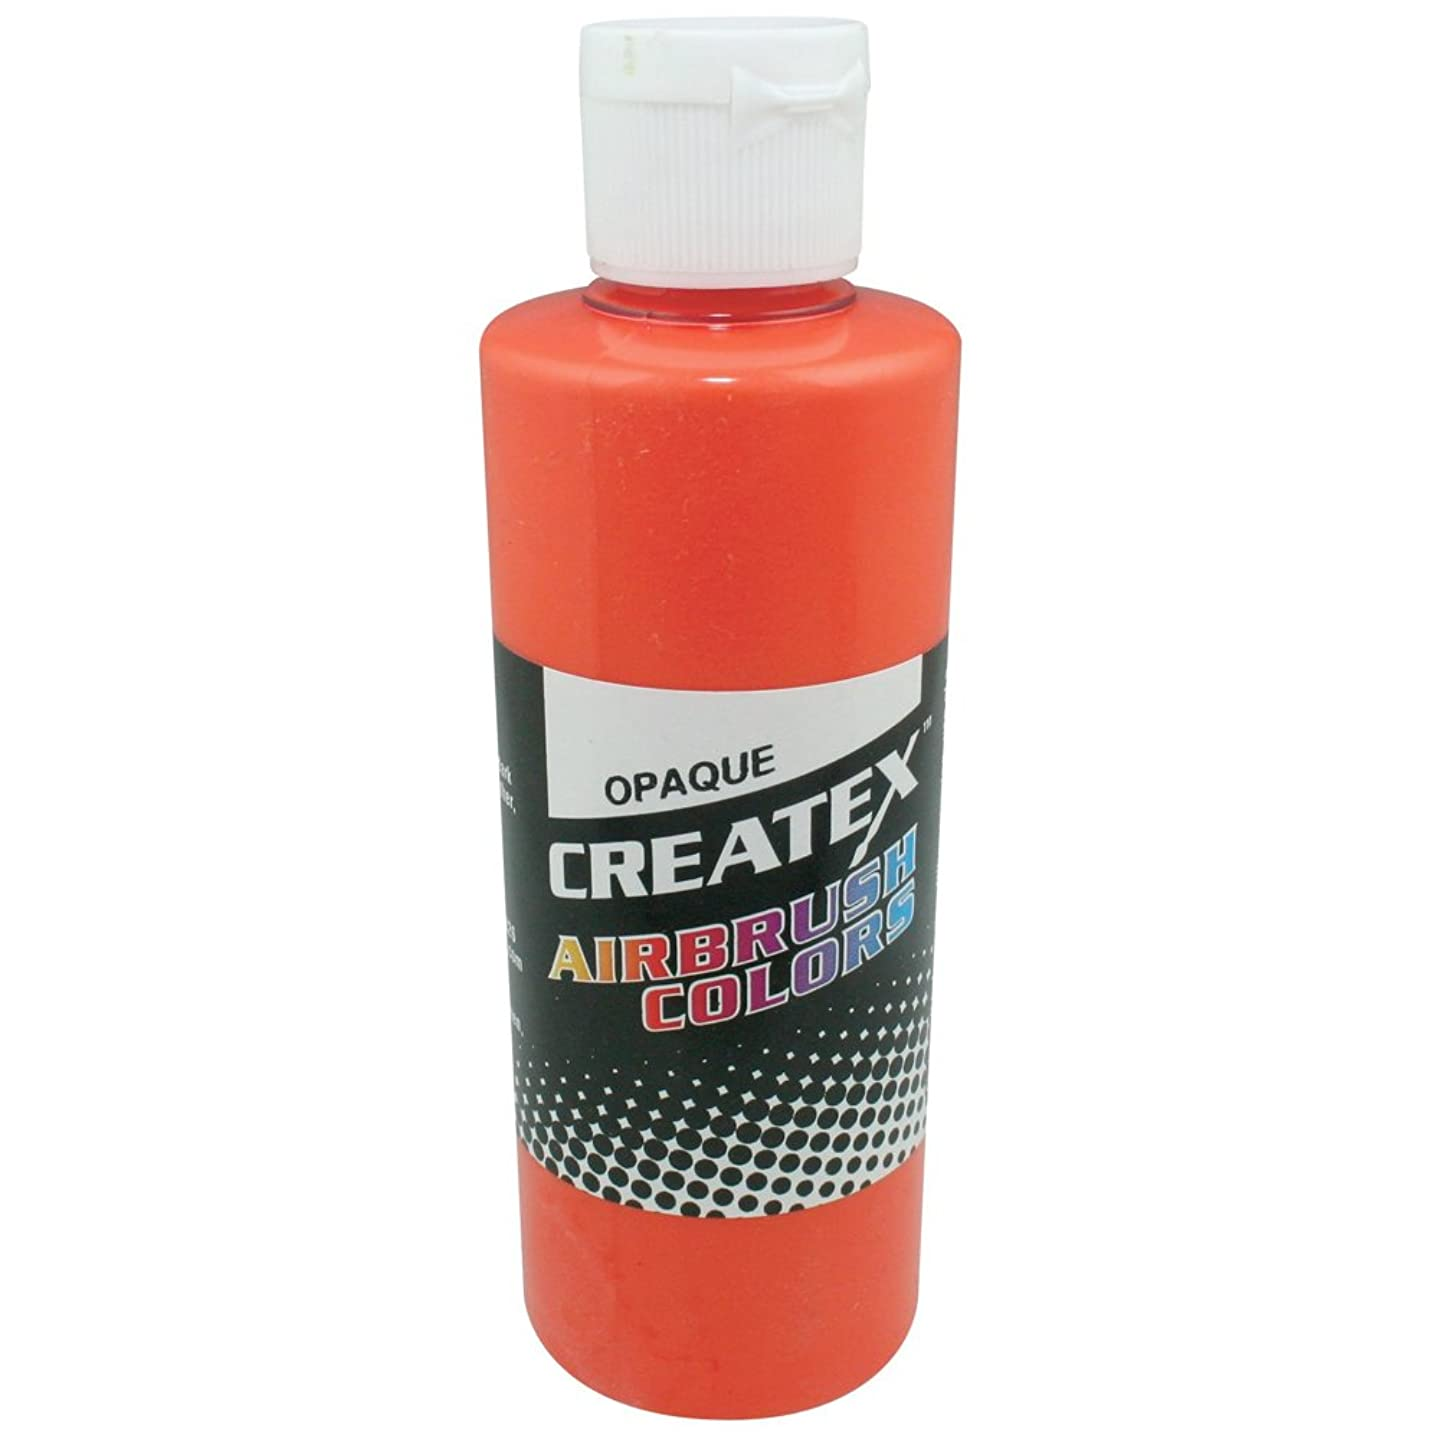 Createx Airbrush Paint, Opaque Coral, 2 oz (5208-02)